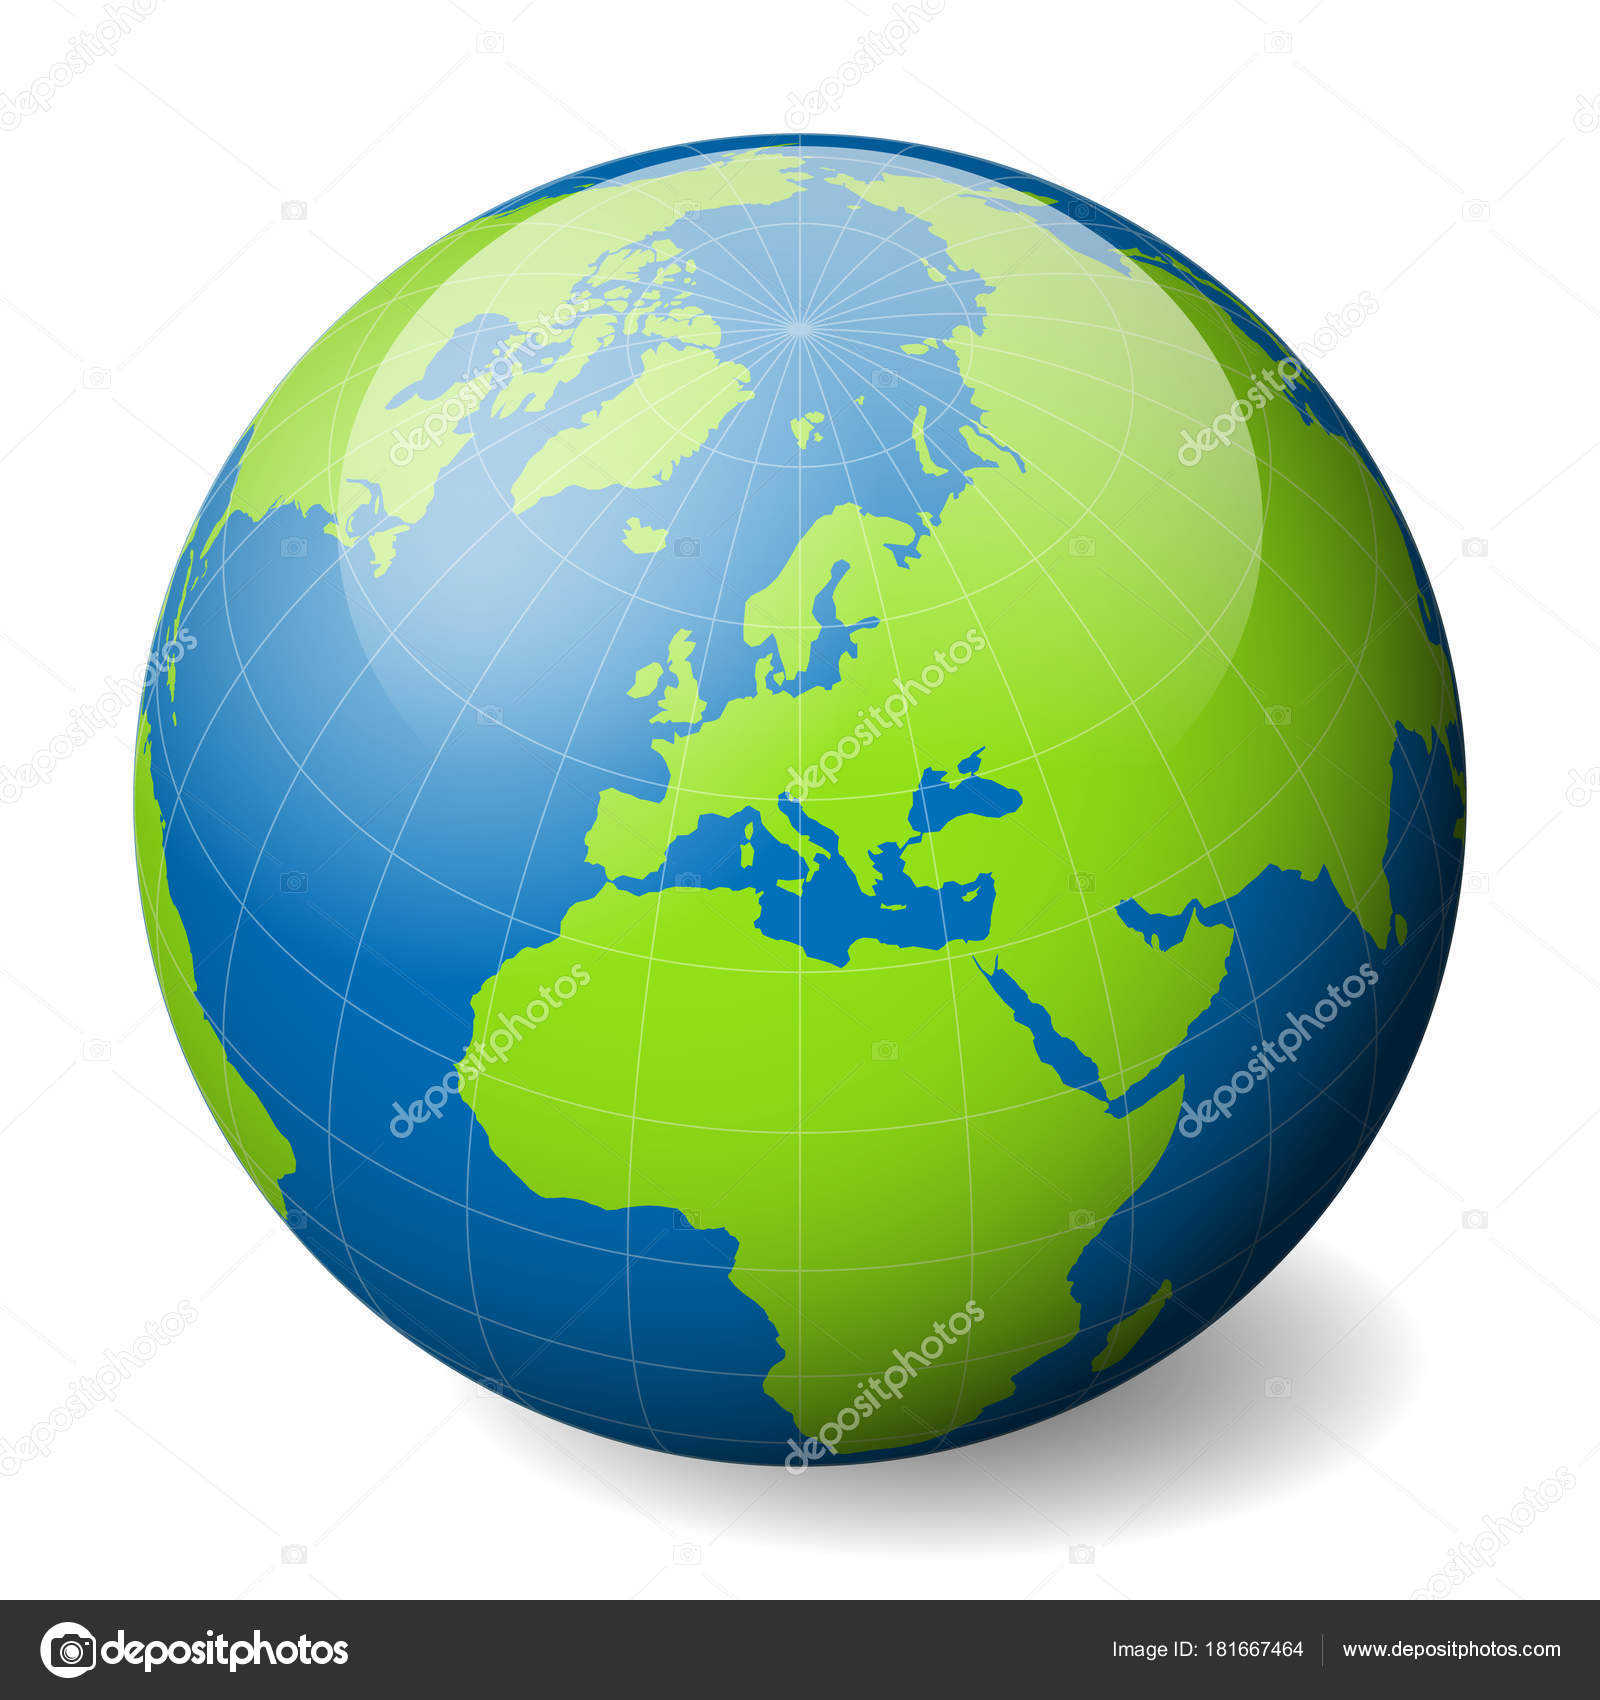 Earth globe with green world map and blue seas and oceans focused on earth globe with green world map and blue seas and oceans focused on europe with gumiabroncs Choice Image